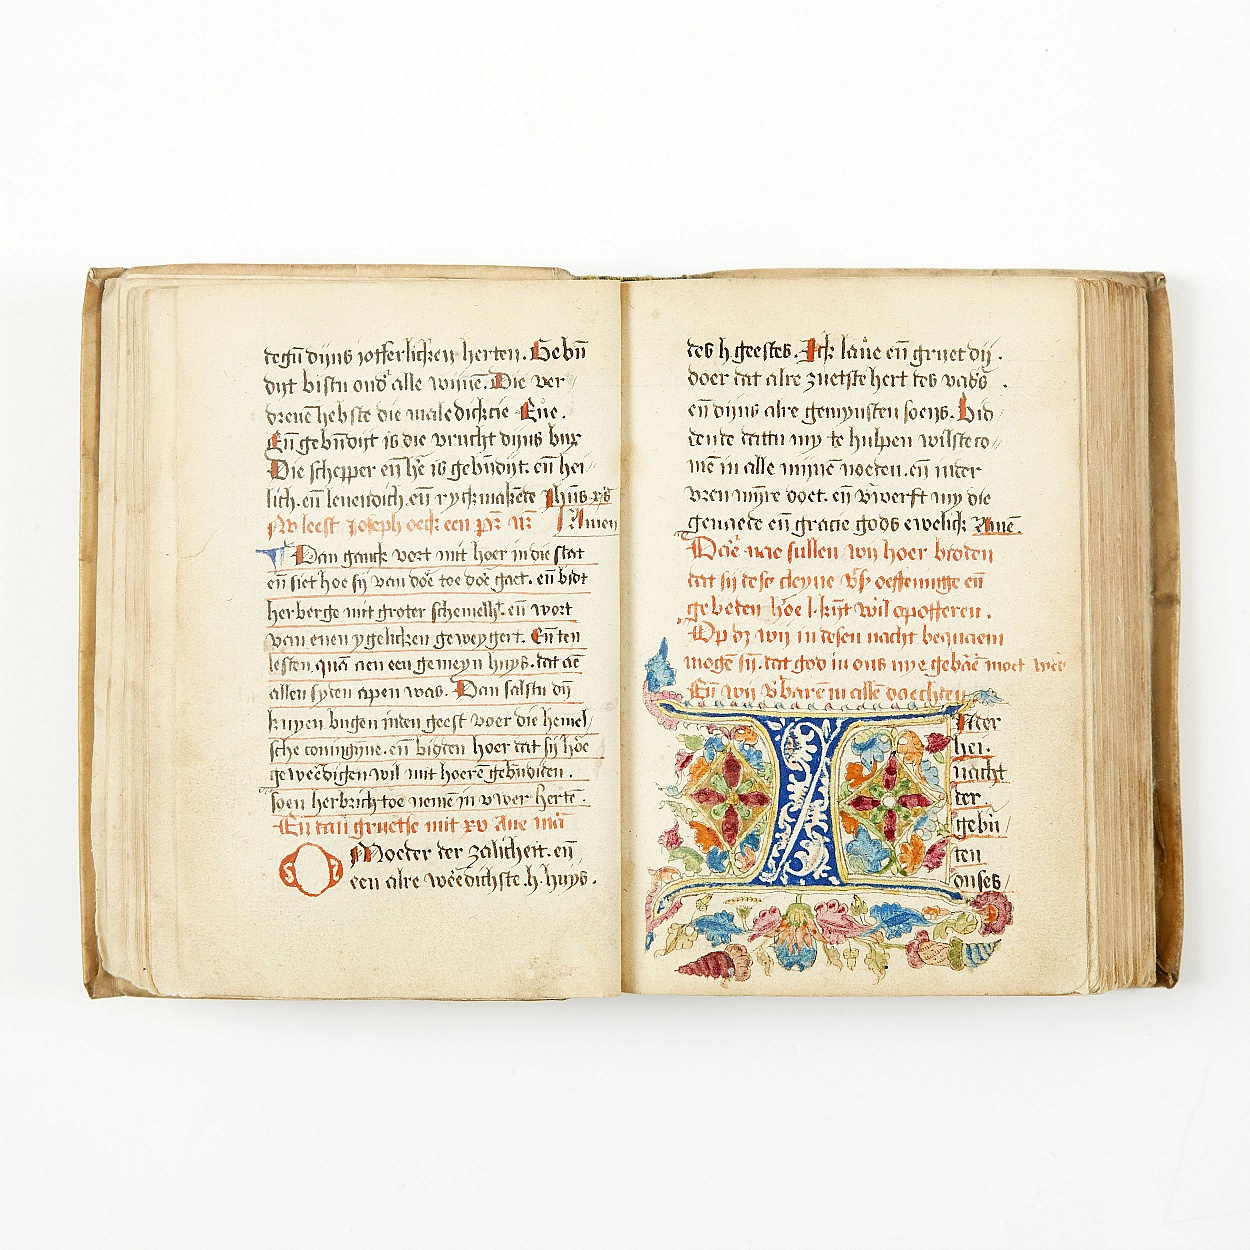 Dutch prayer, 16th century manuscript